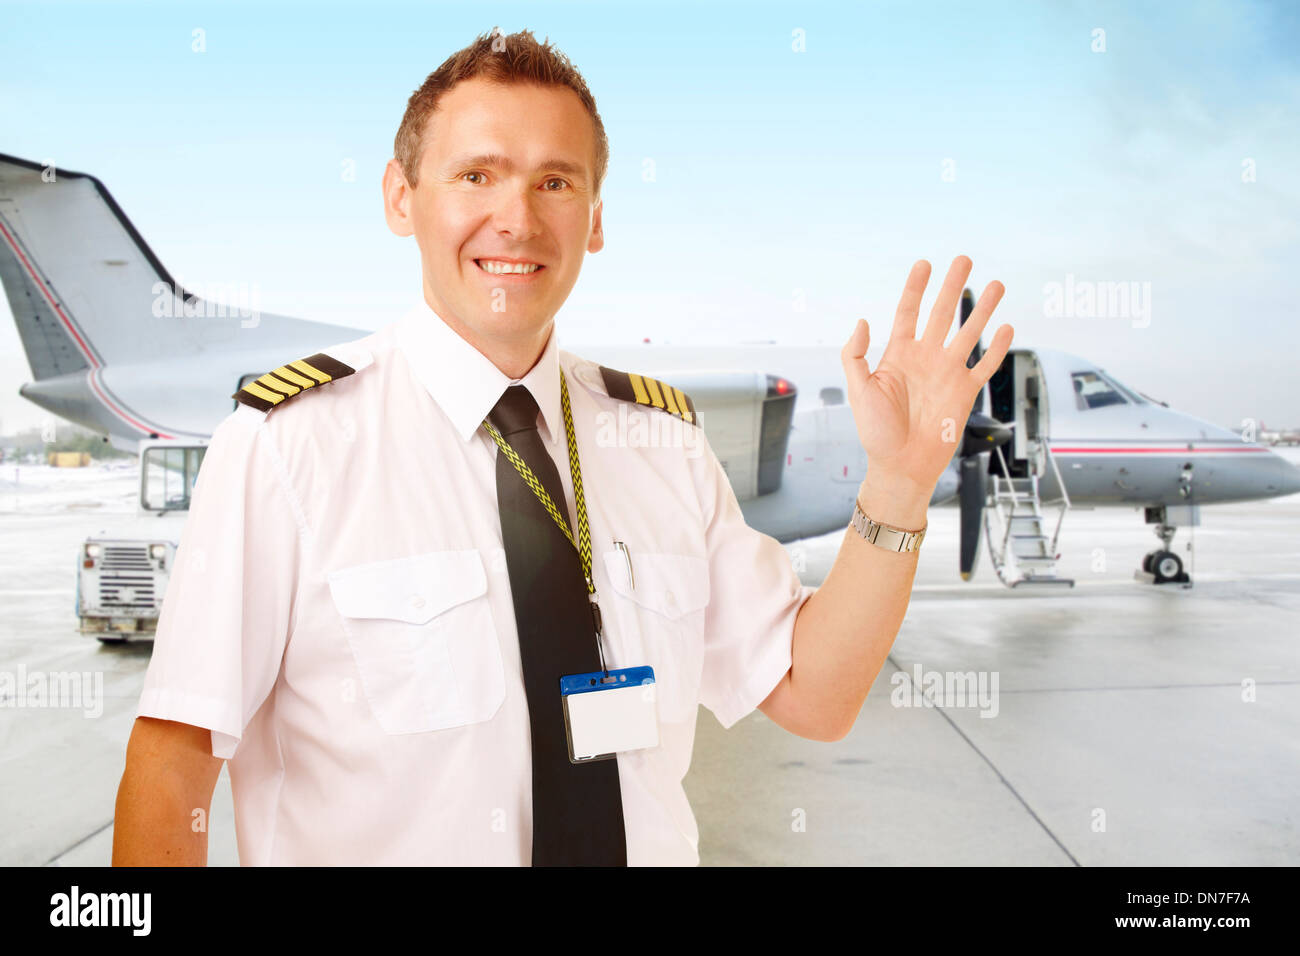 Airline pilot wearing uniform with epaulettes waving, with passenger aircraft in background - Stock Image